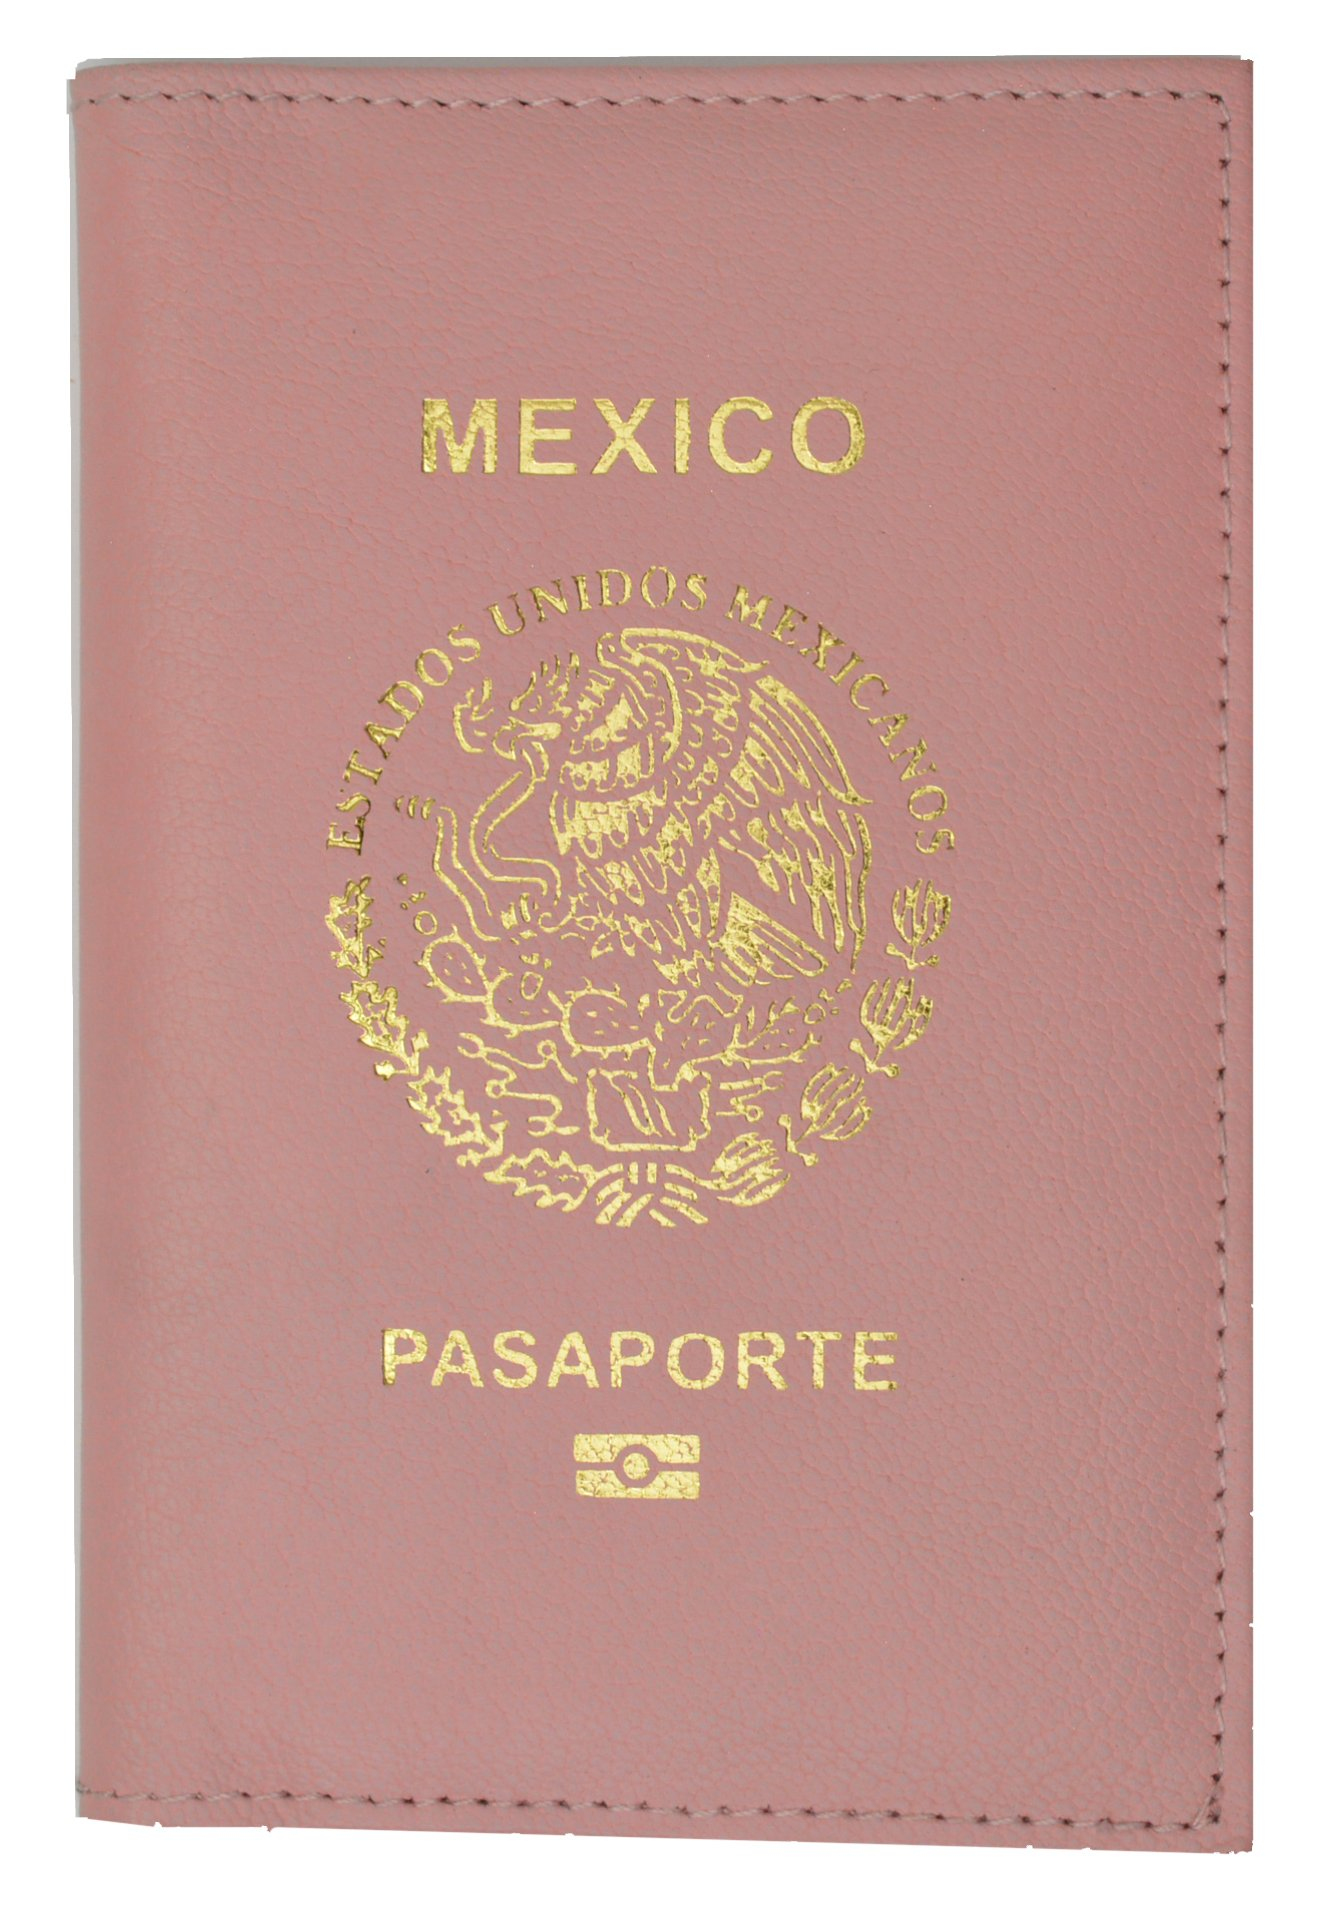 Mexico Passport Cover Genuine Leather Travel Wallet with Emblem Pasaporte (Pink)